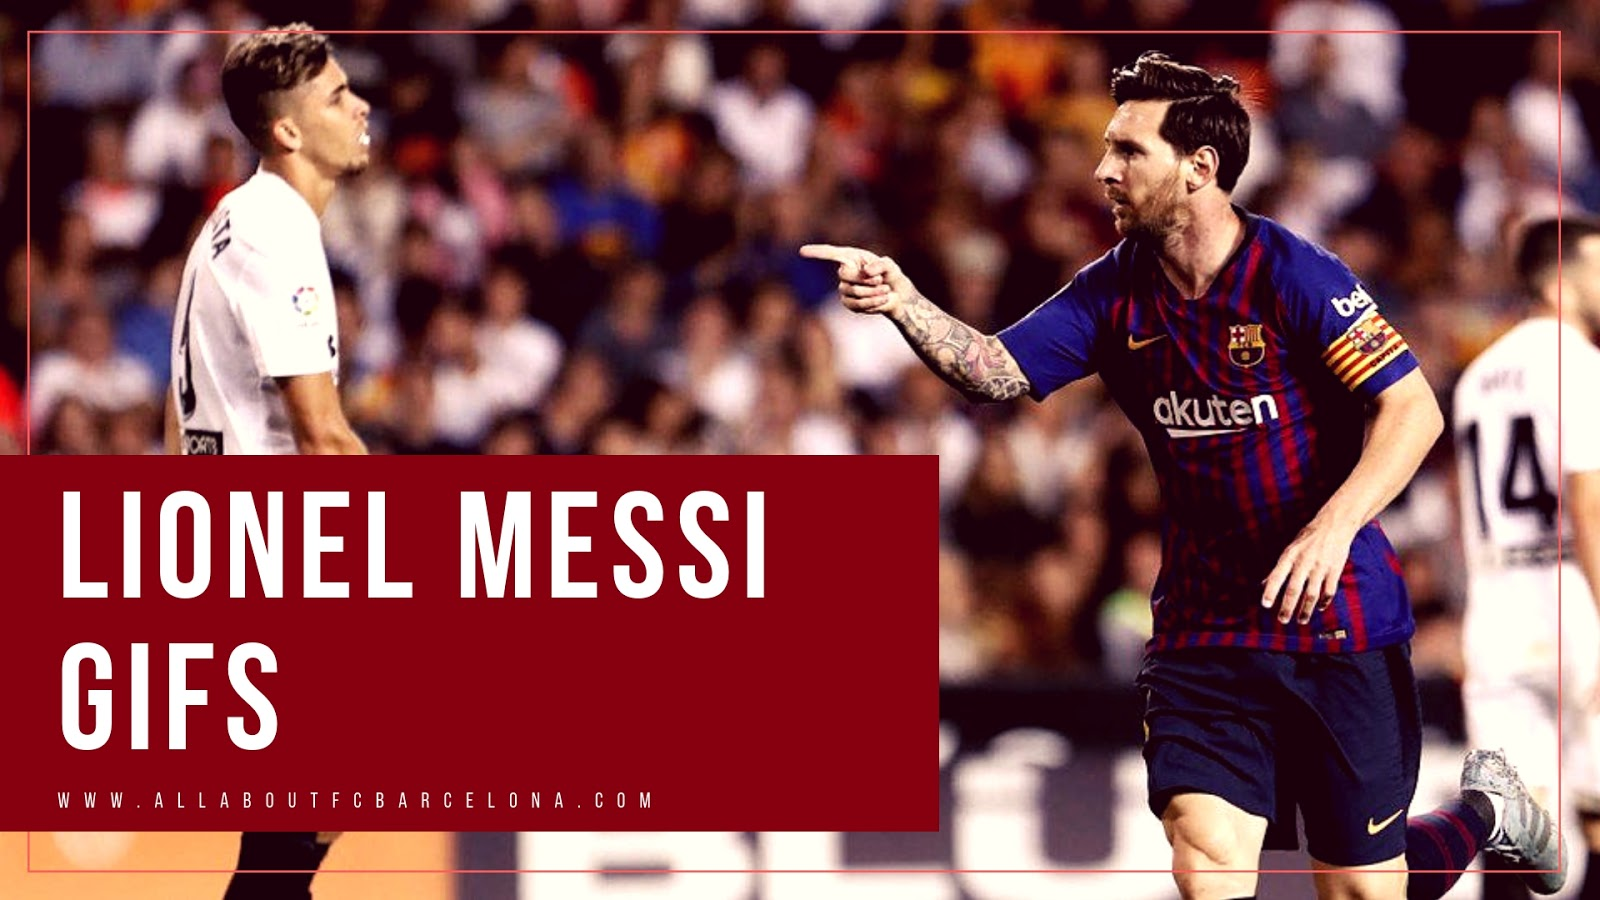 Lionel Messi Gifs against Valencia #MessiGIFS #BarcaGIFS